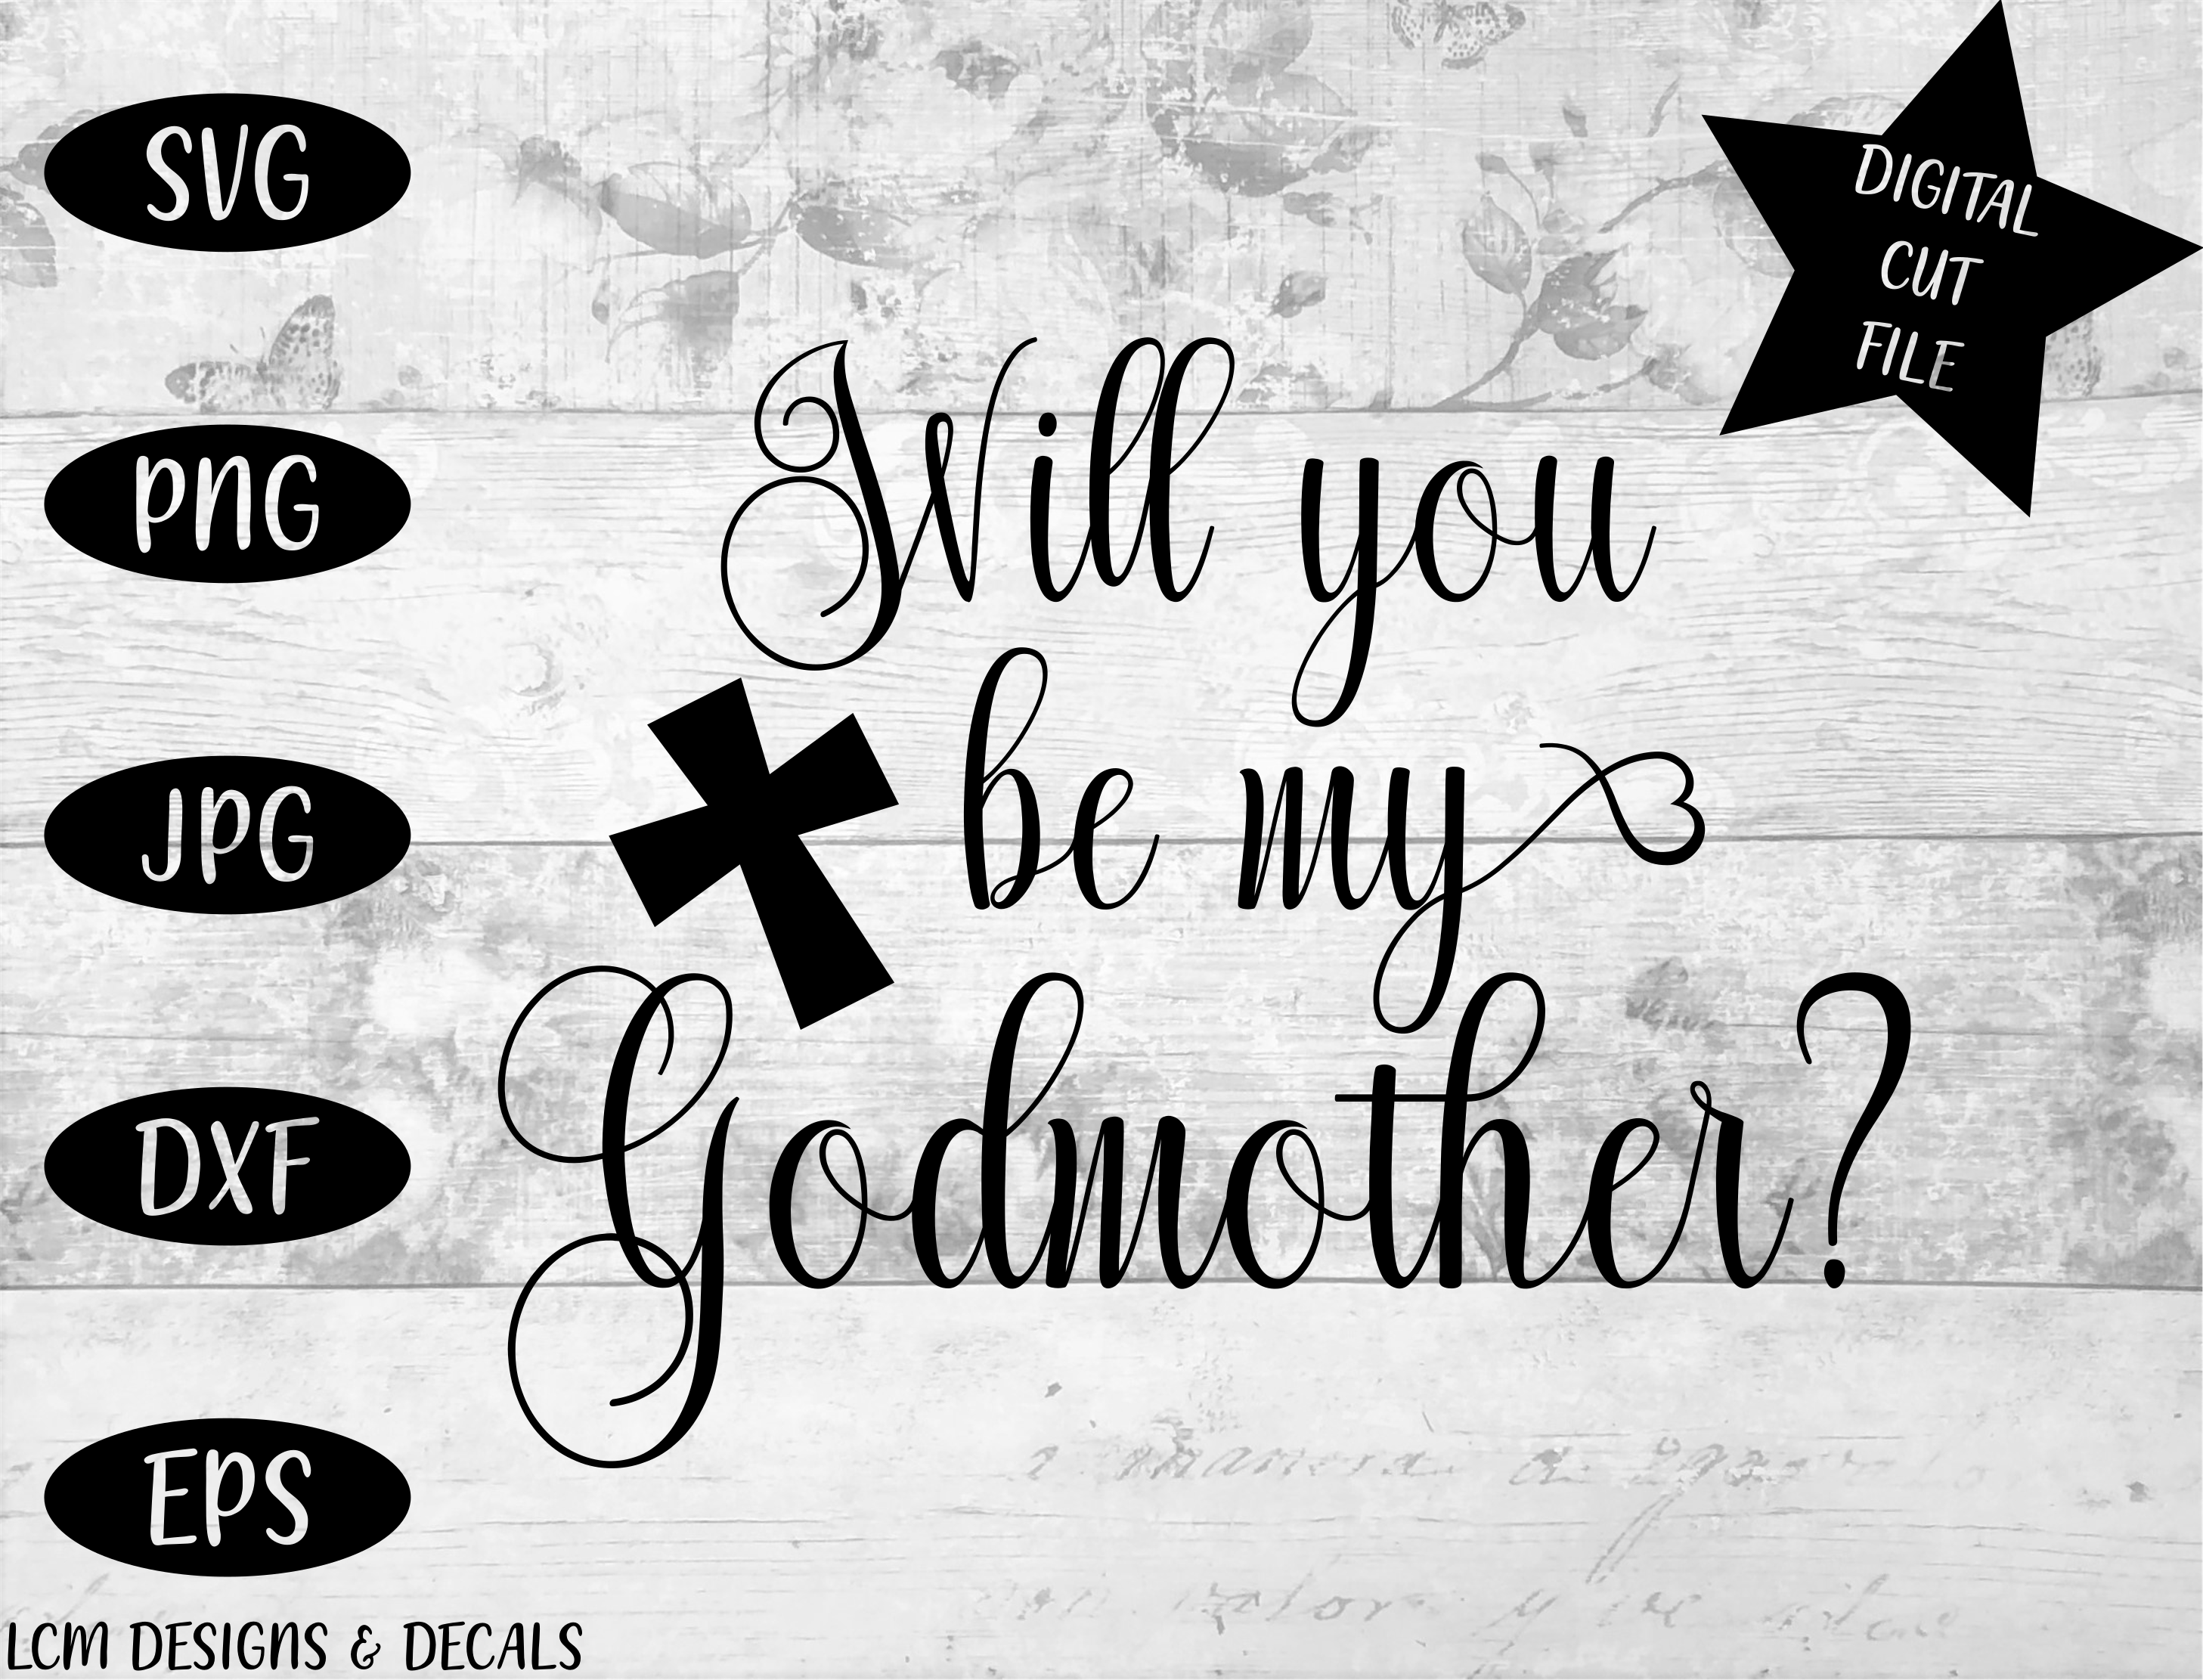 Download Free Will You Be My Godmother Graphic By Lcm Designs Creative Fabrica for Cricut Explore, Silhouette and other cutting machines.